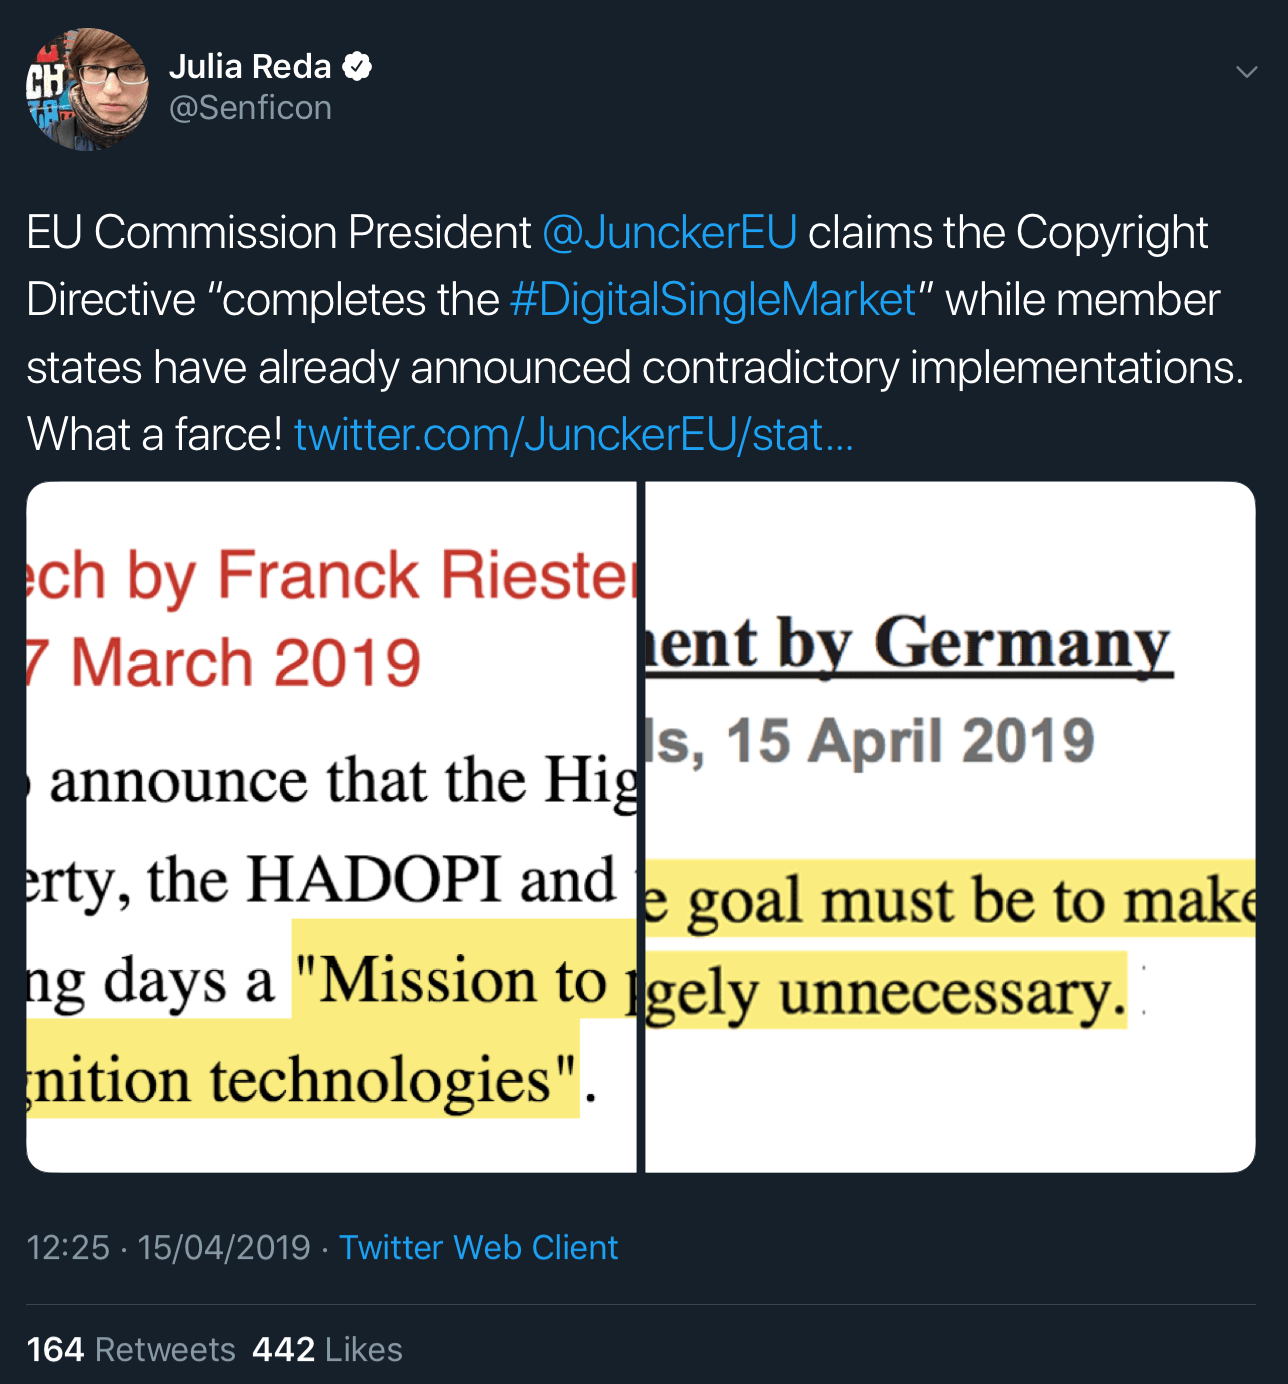 Julia Reda's tweet about France and Germany's conflicting statements on Article 13's requirement for online platforms to start using upload filters.